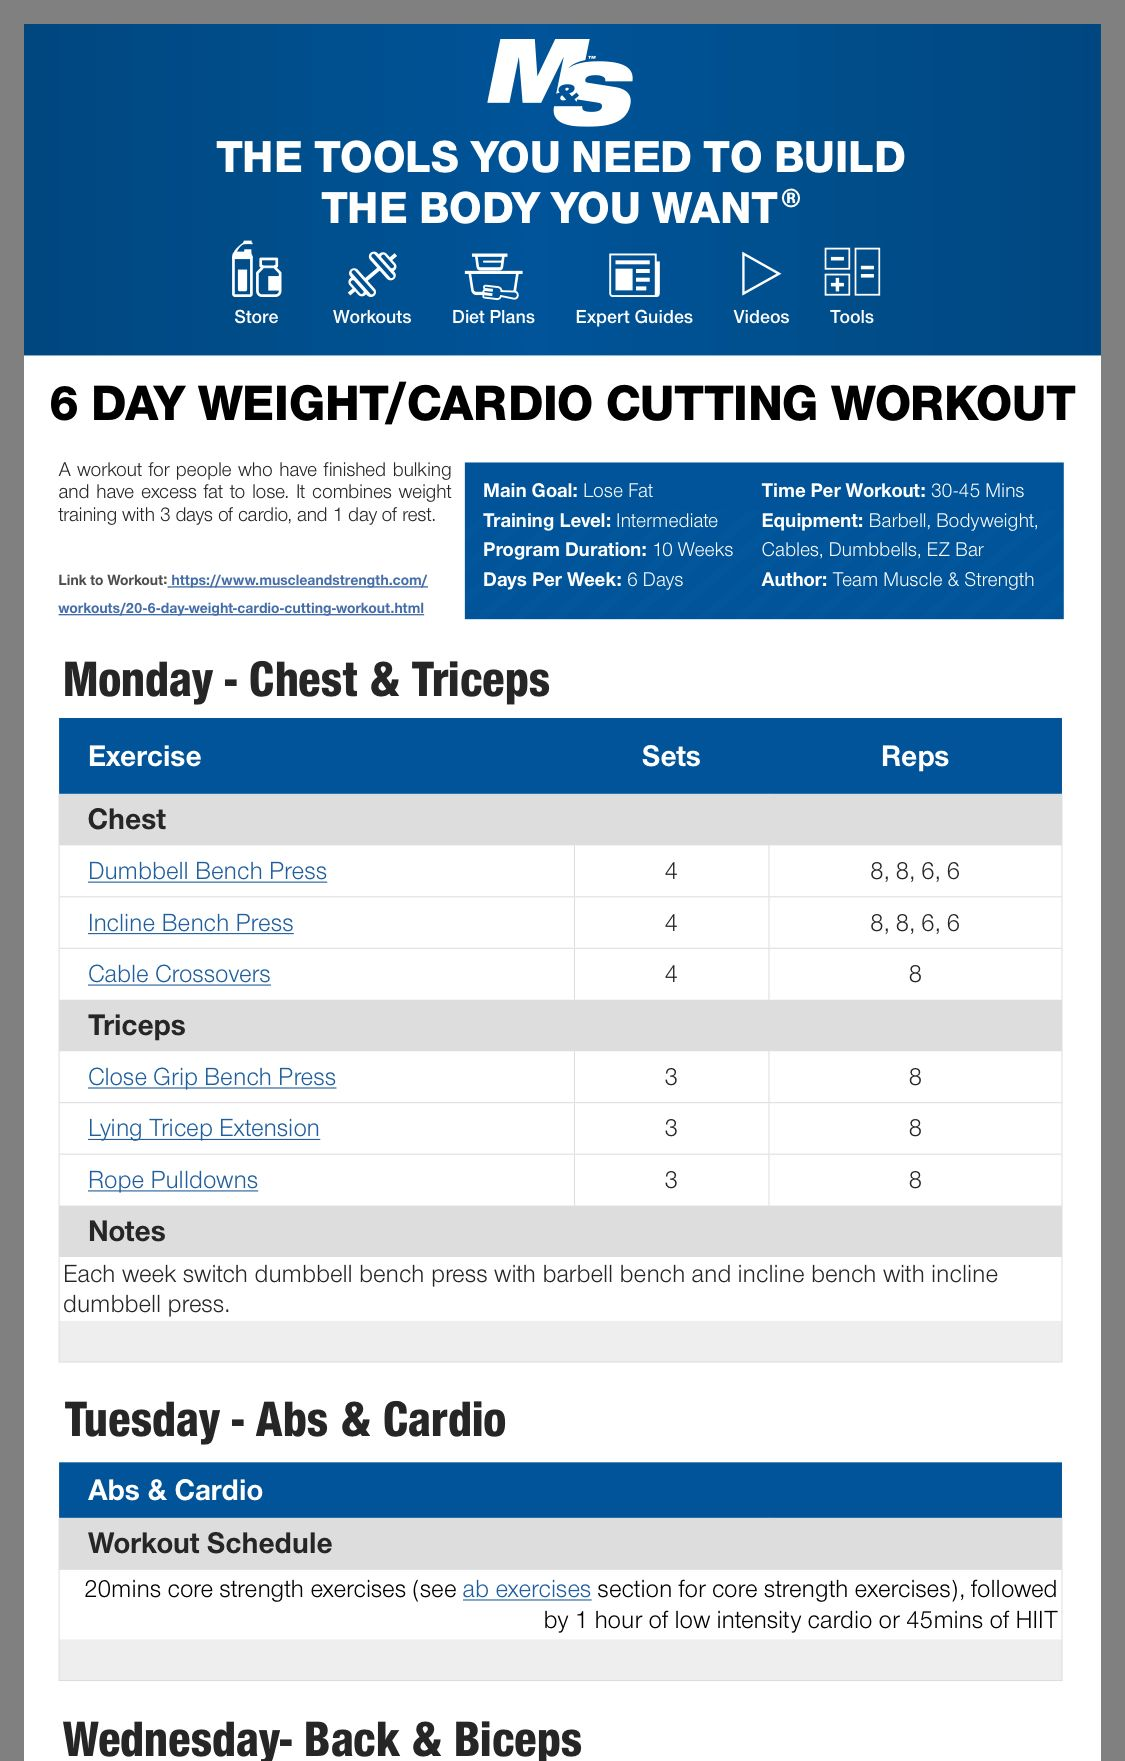 Pin by Carlos Gomez on Muscle workout | Gym workouts, Strength